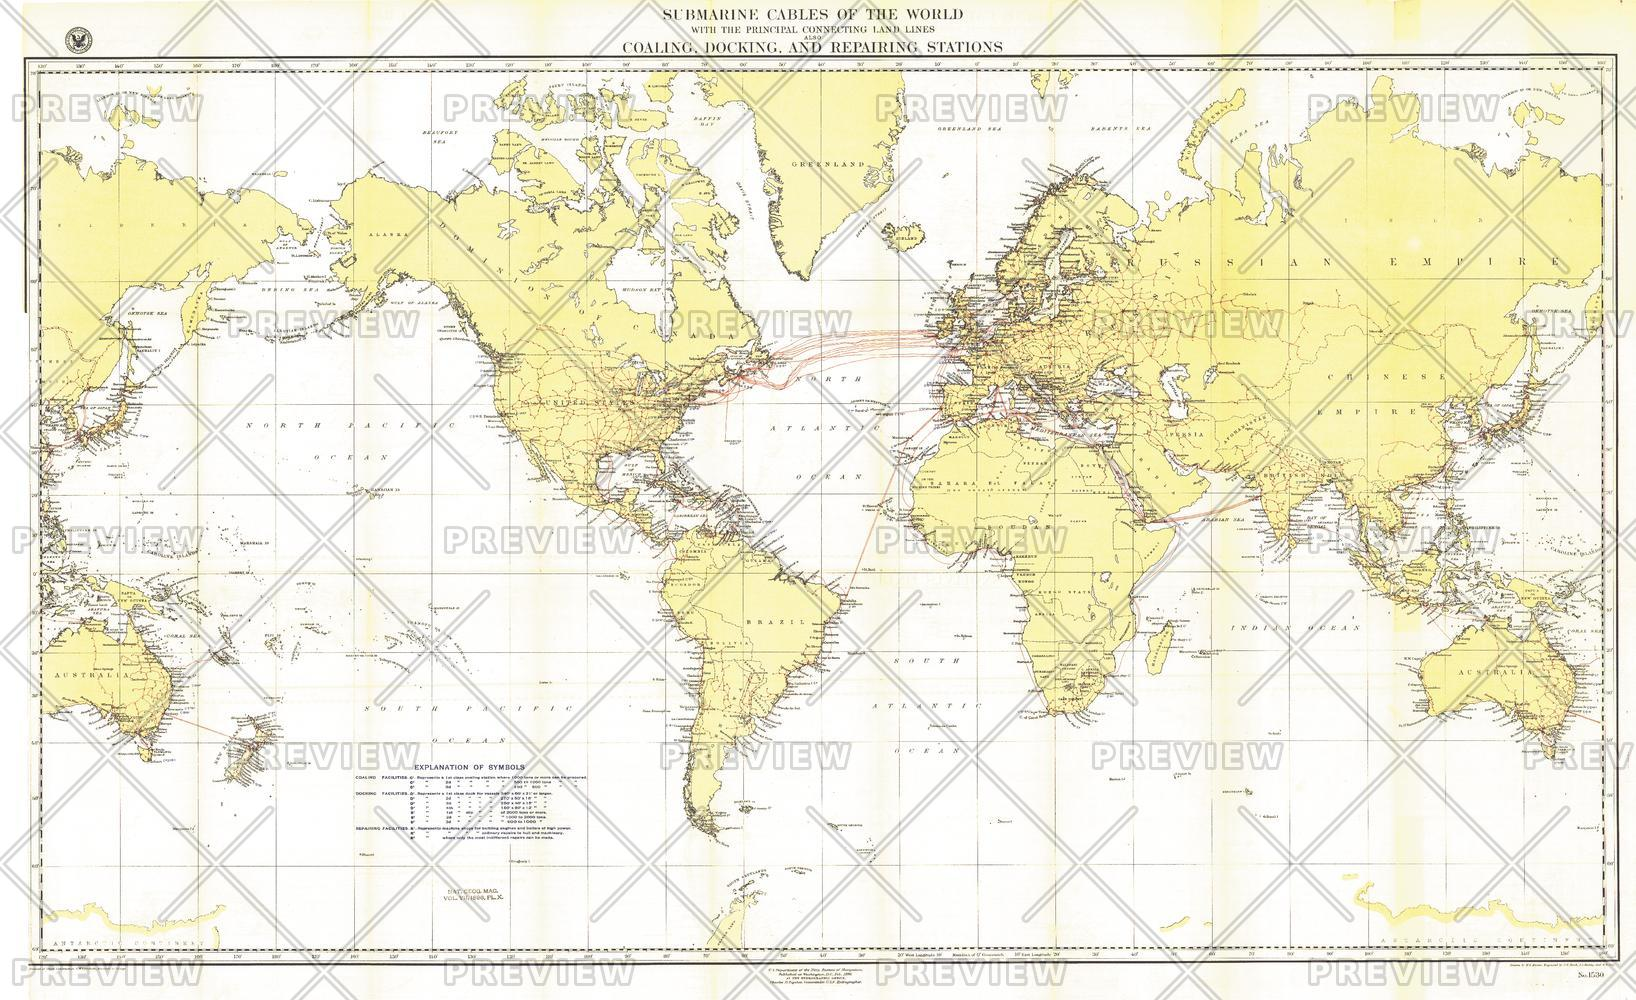 Submarine Cables of the World - Published 1896